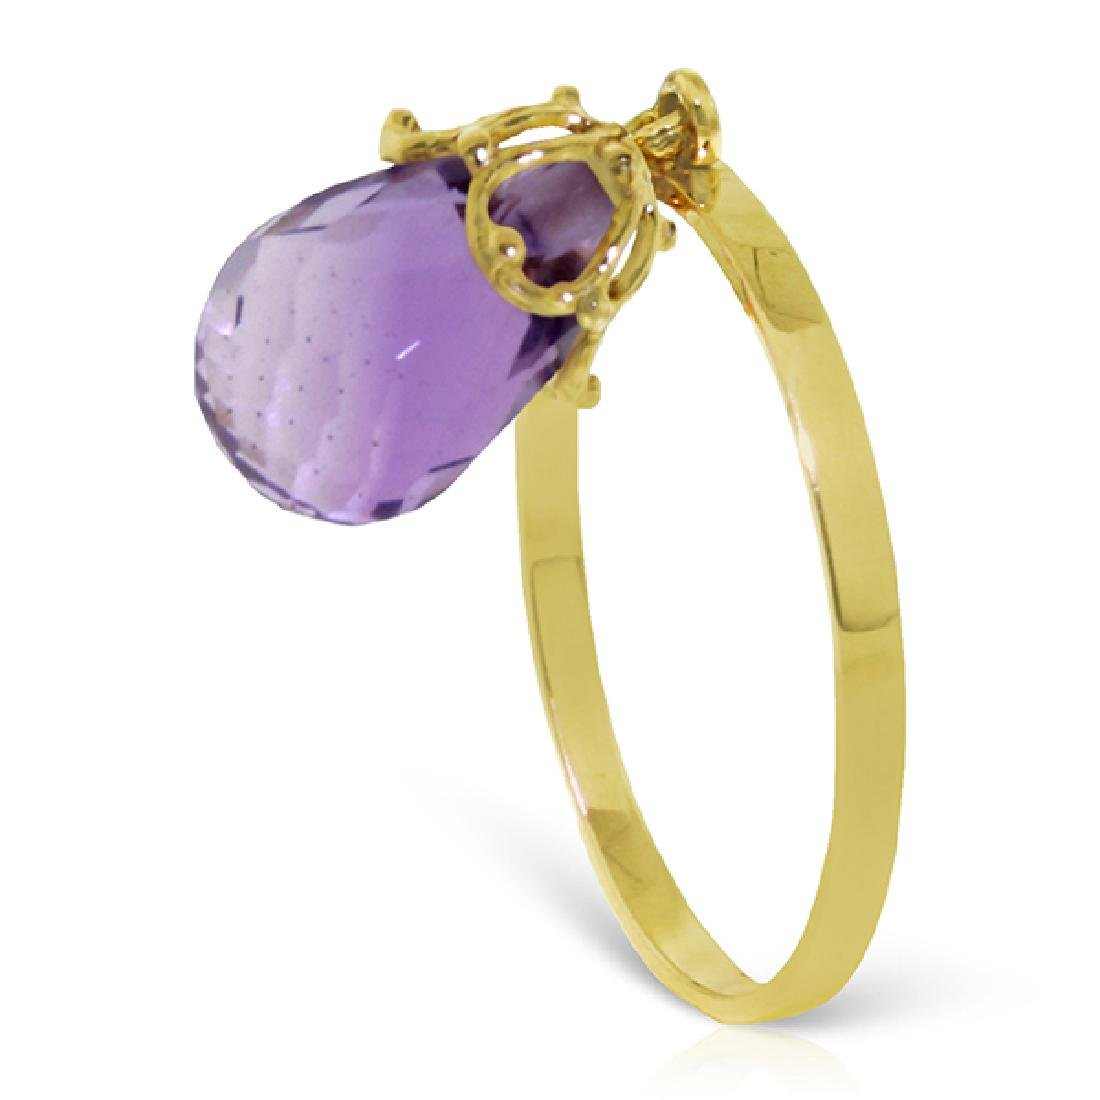 Genuine 3 ctw Amethyst Ring Jewelry 14KT Yellow Gold -